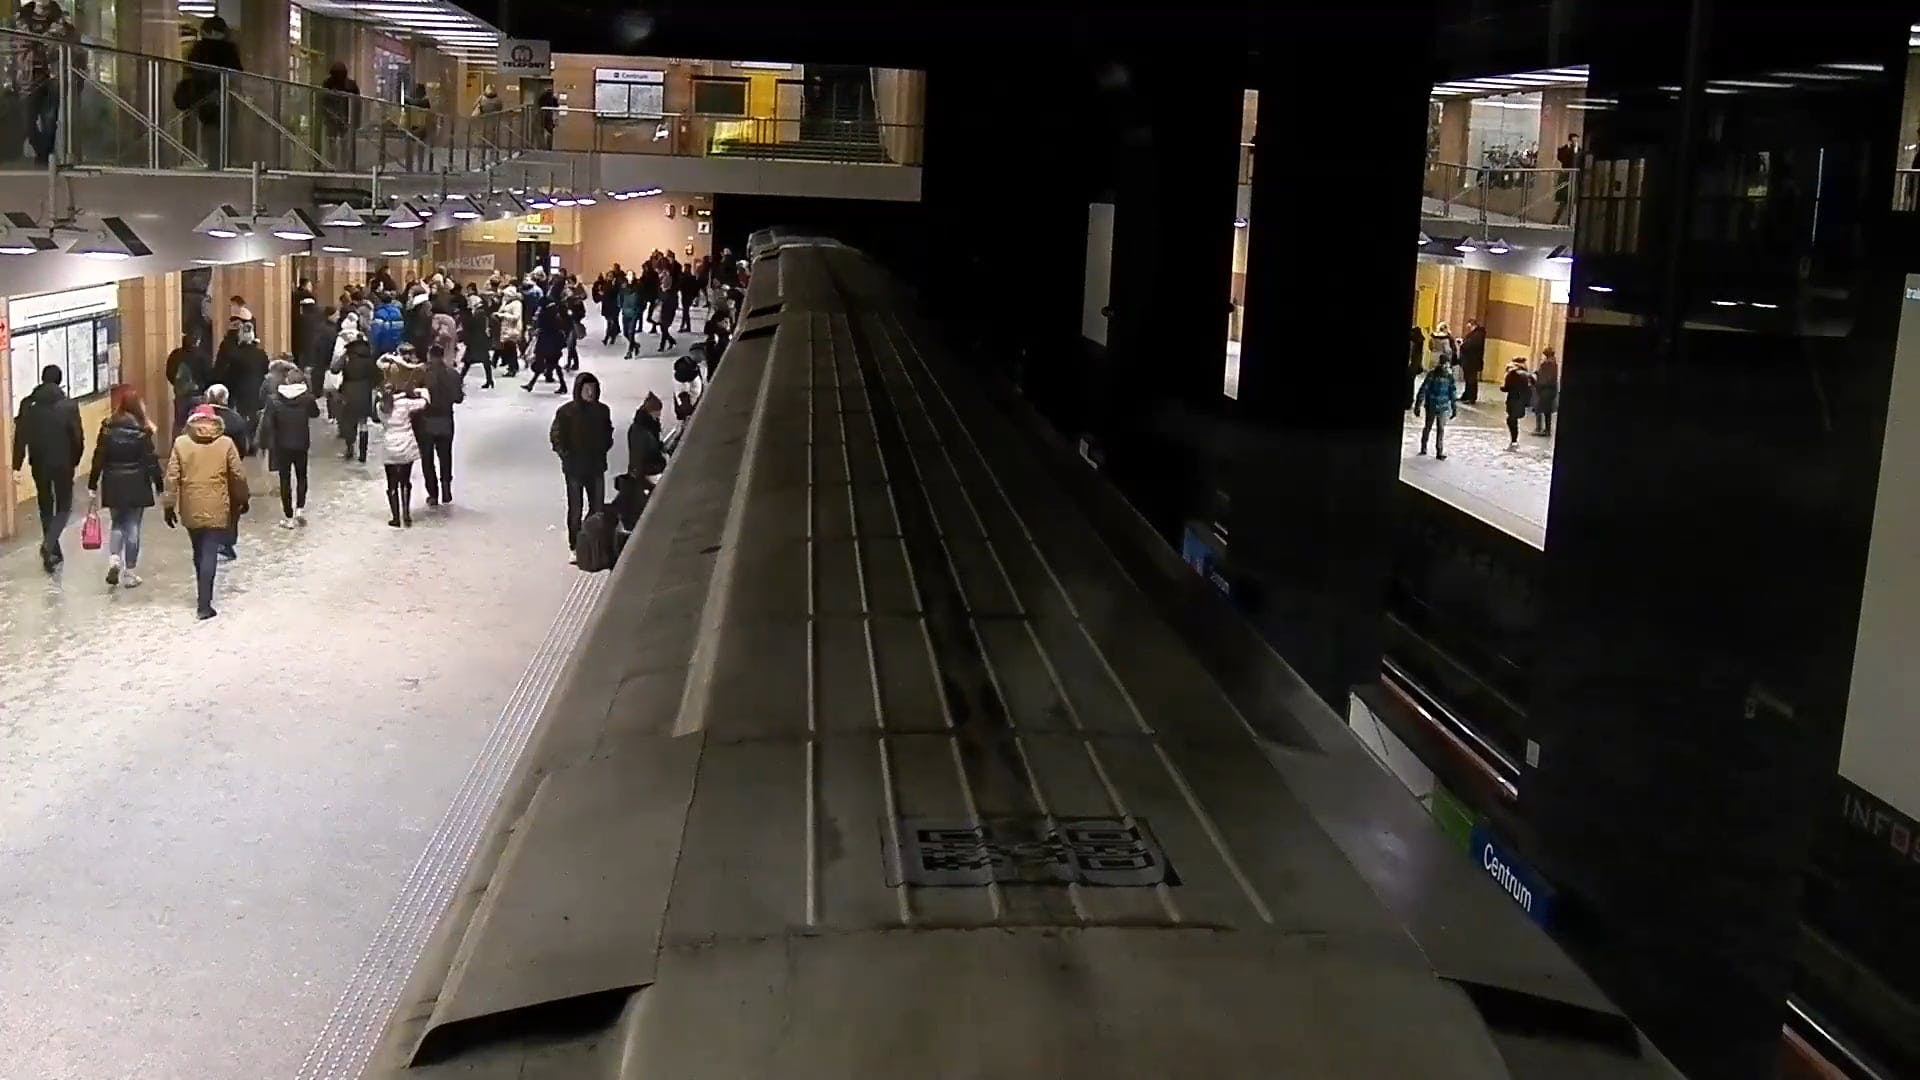 Time Lapse Video Of People At Subway Station